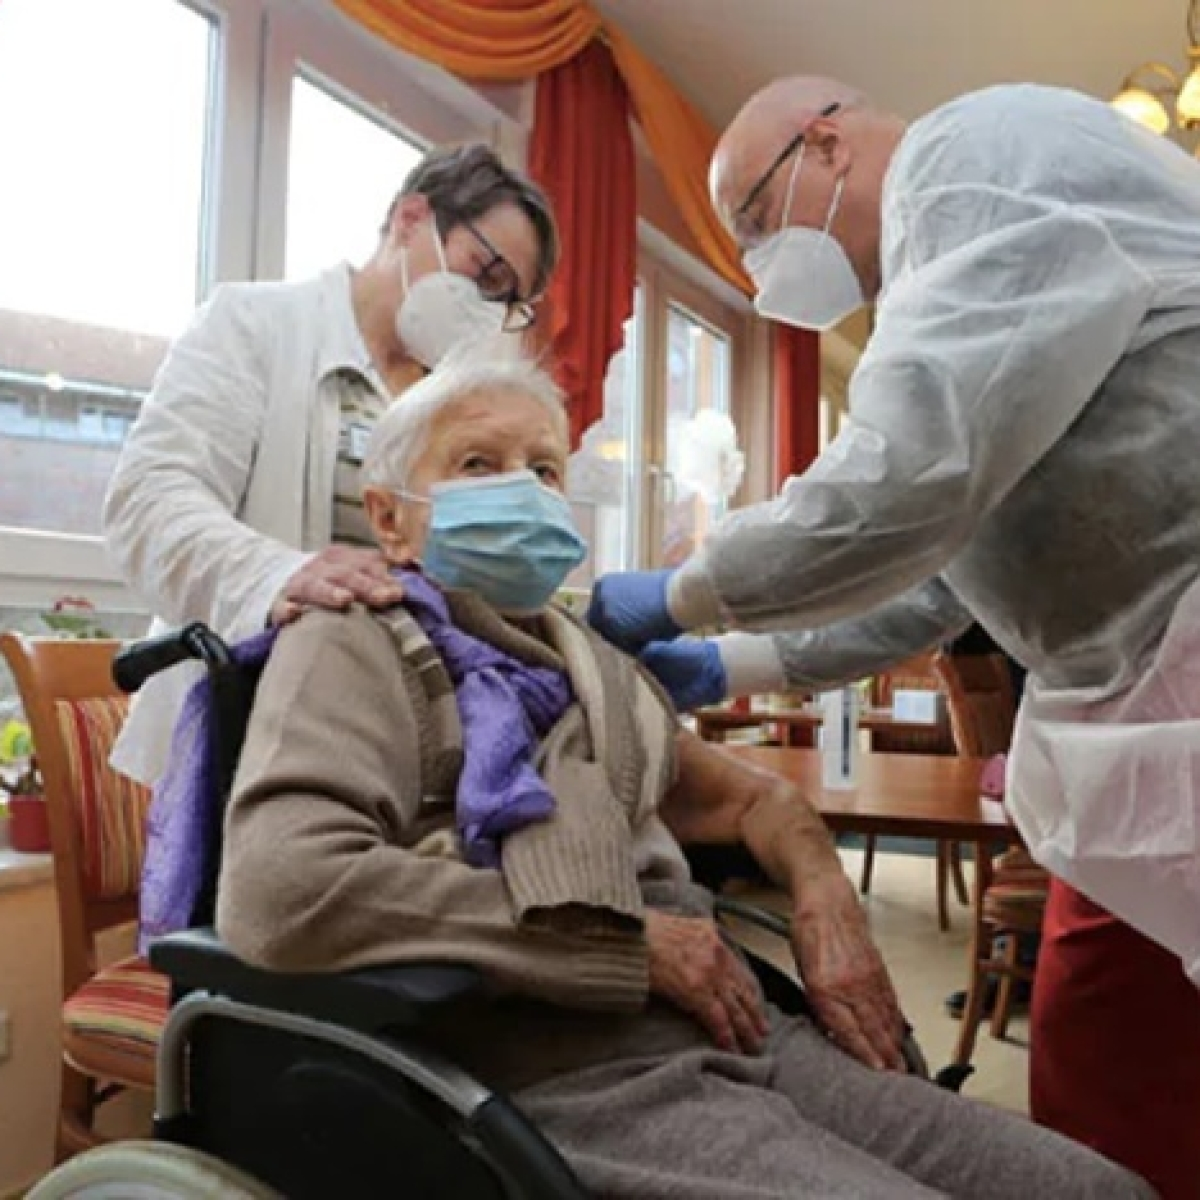 101-year-old woman becomes Germany's first COVID-19 vaccine recipient